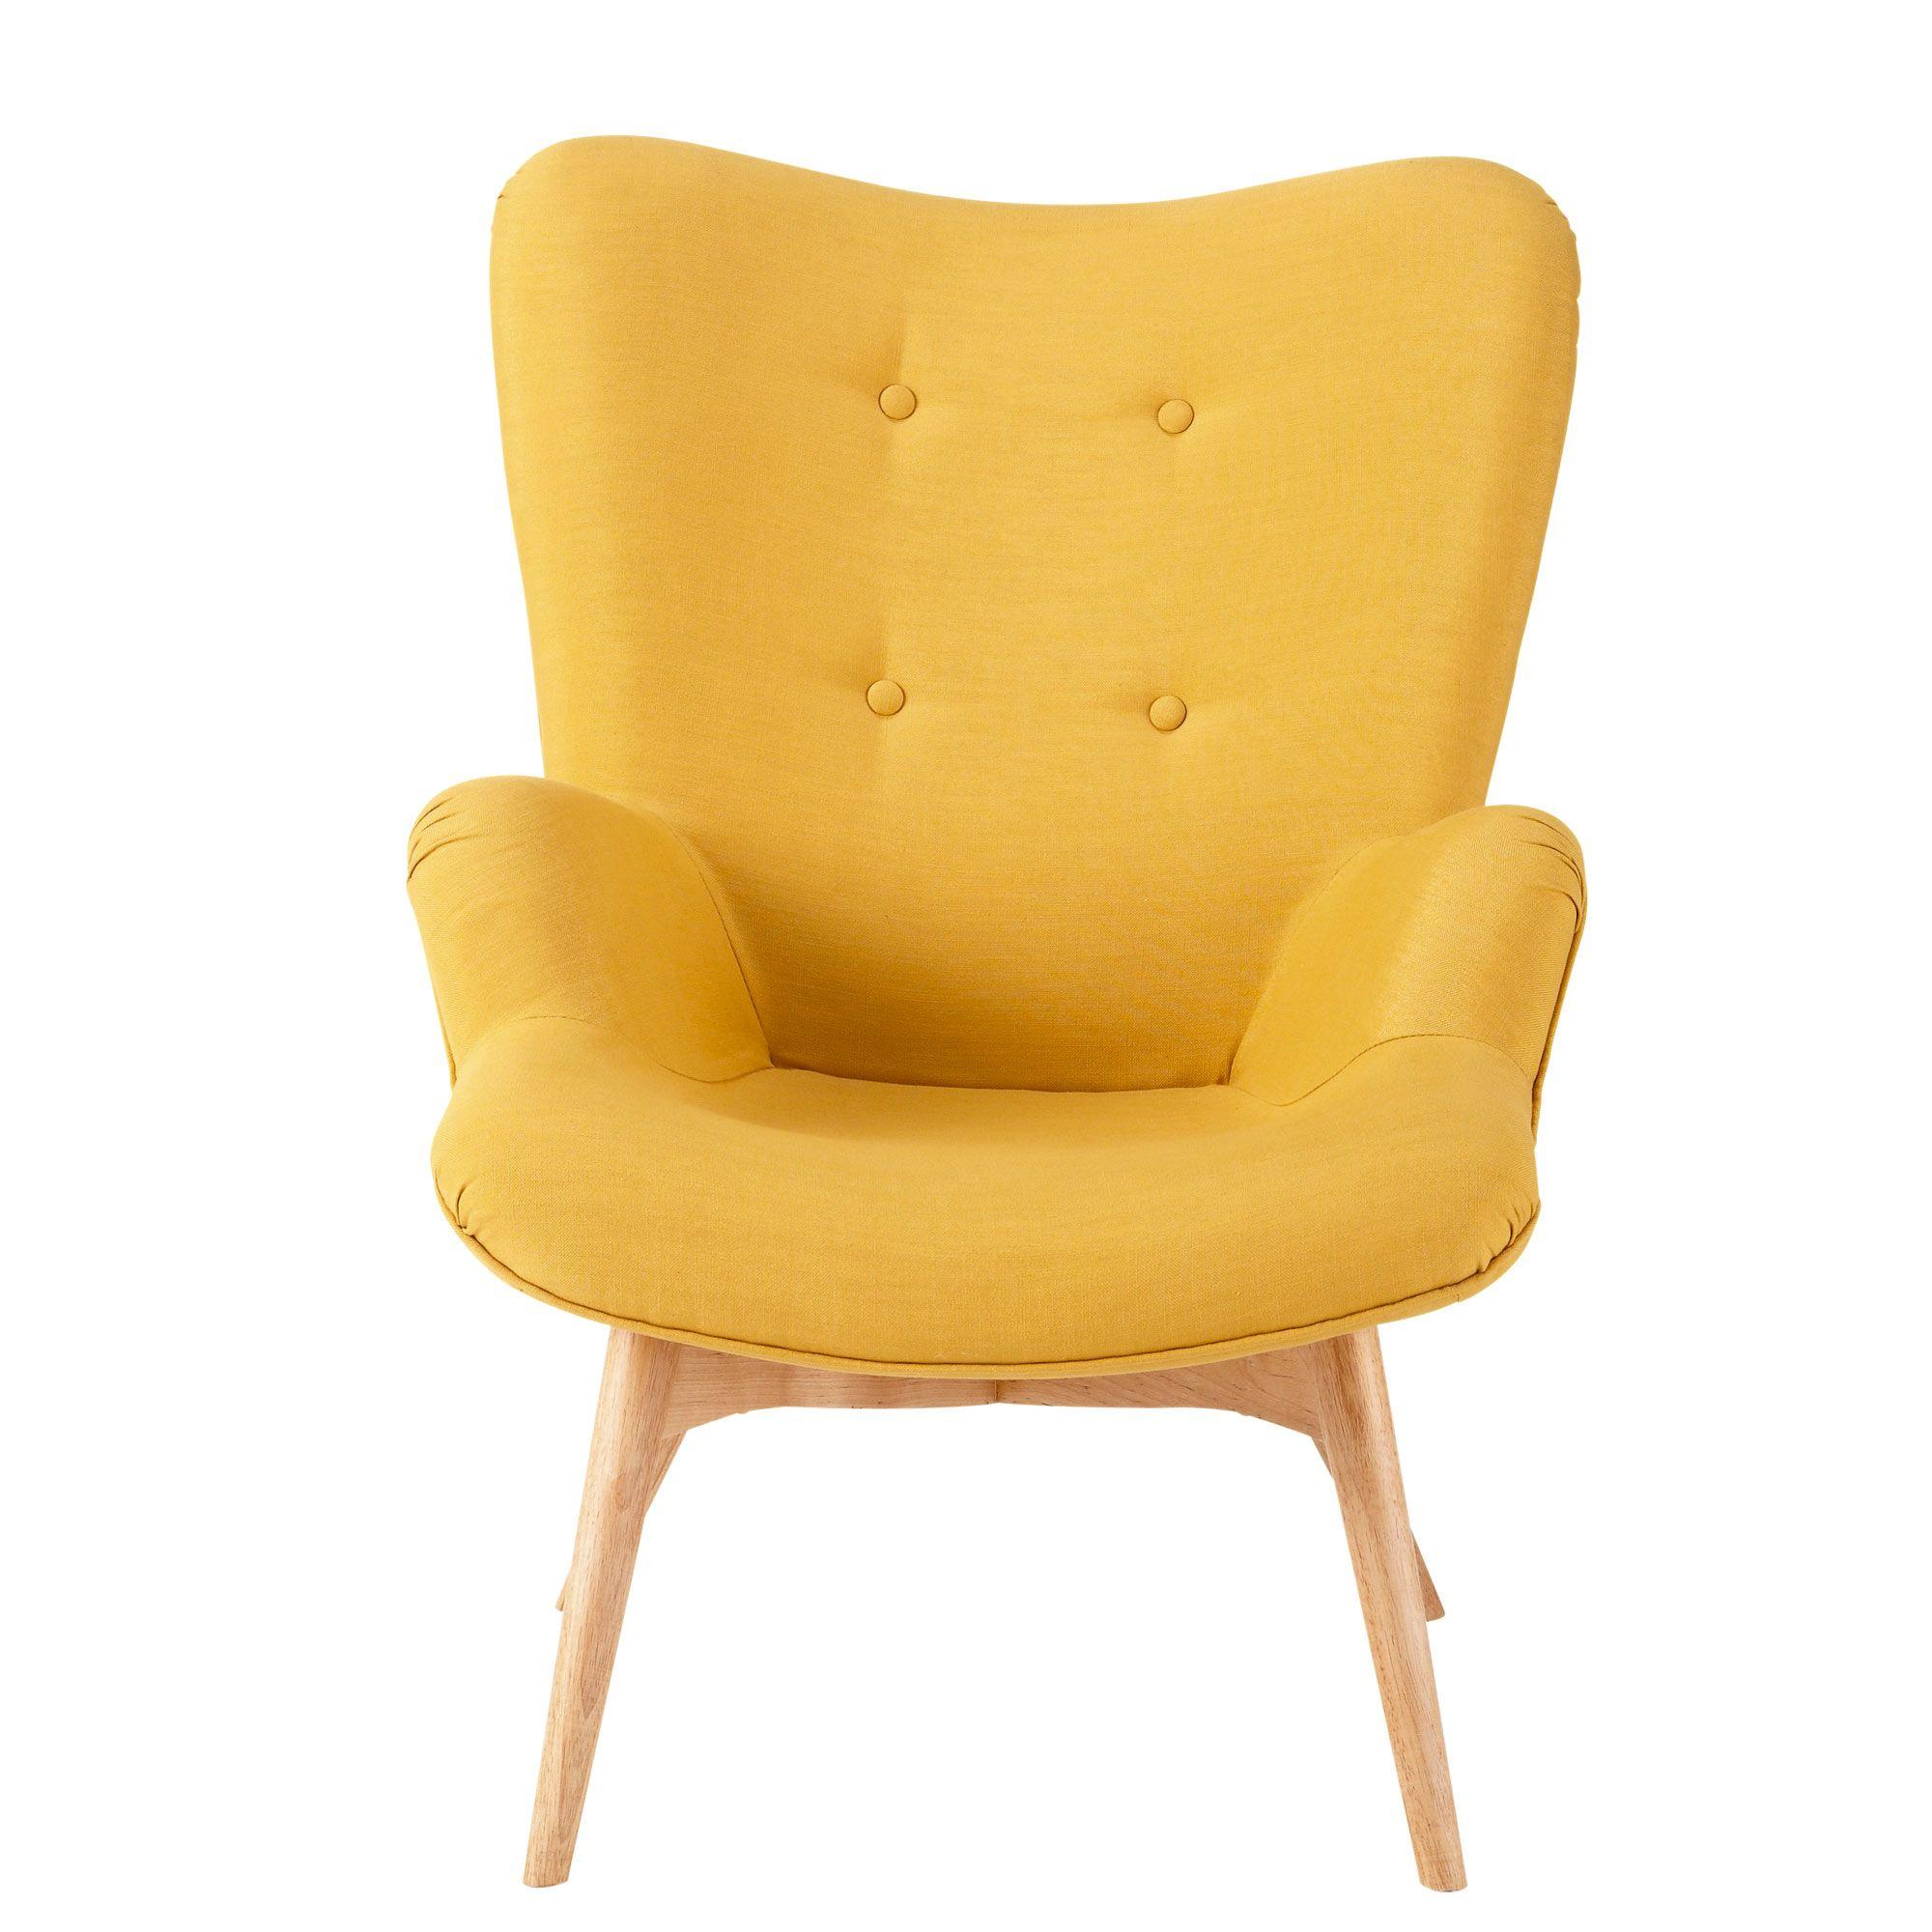 Vintage Sessel Occasion Seating 21 Elmwood West Yellow Armchair Armchair